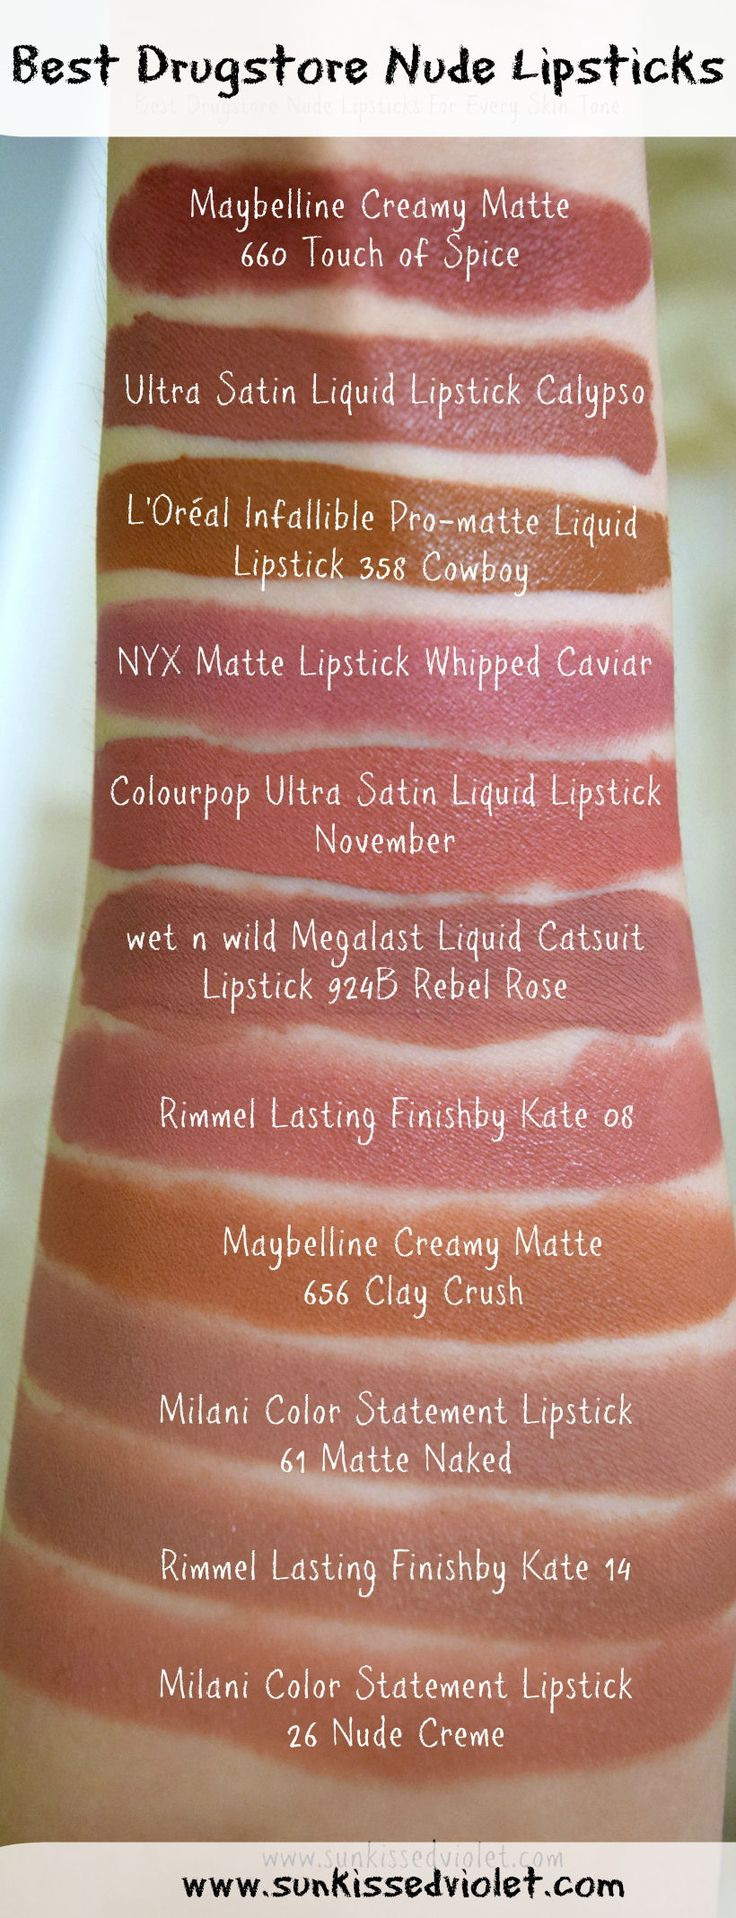 Best Drugstore Nude Lipsticks for Every Skin Tone & How to find the Right One for Your Complexion: Milani Nude Crème Matte Naked, Rimmel by Kate 008 014, Wet n Wild Rebel Rose, ColourPop Ultra Satin Liquid Lipstick November Calypso, Maybelline Creamy Matte Clay Crush Touch of Spice, L'Oreal Infallible Pro-Matte Liquid Lipstick Cowboy #cosmetics #makeup #drugstoremakeup #lipstick #drugstorelipstick #Nudelipstick #bestofdrugstore #maybelline #liquidlipstick #wetnwild #milani #ColourPop